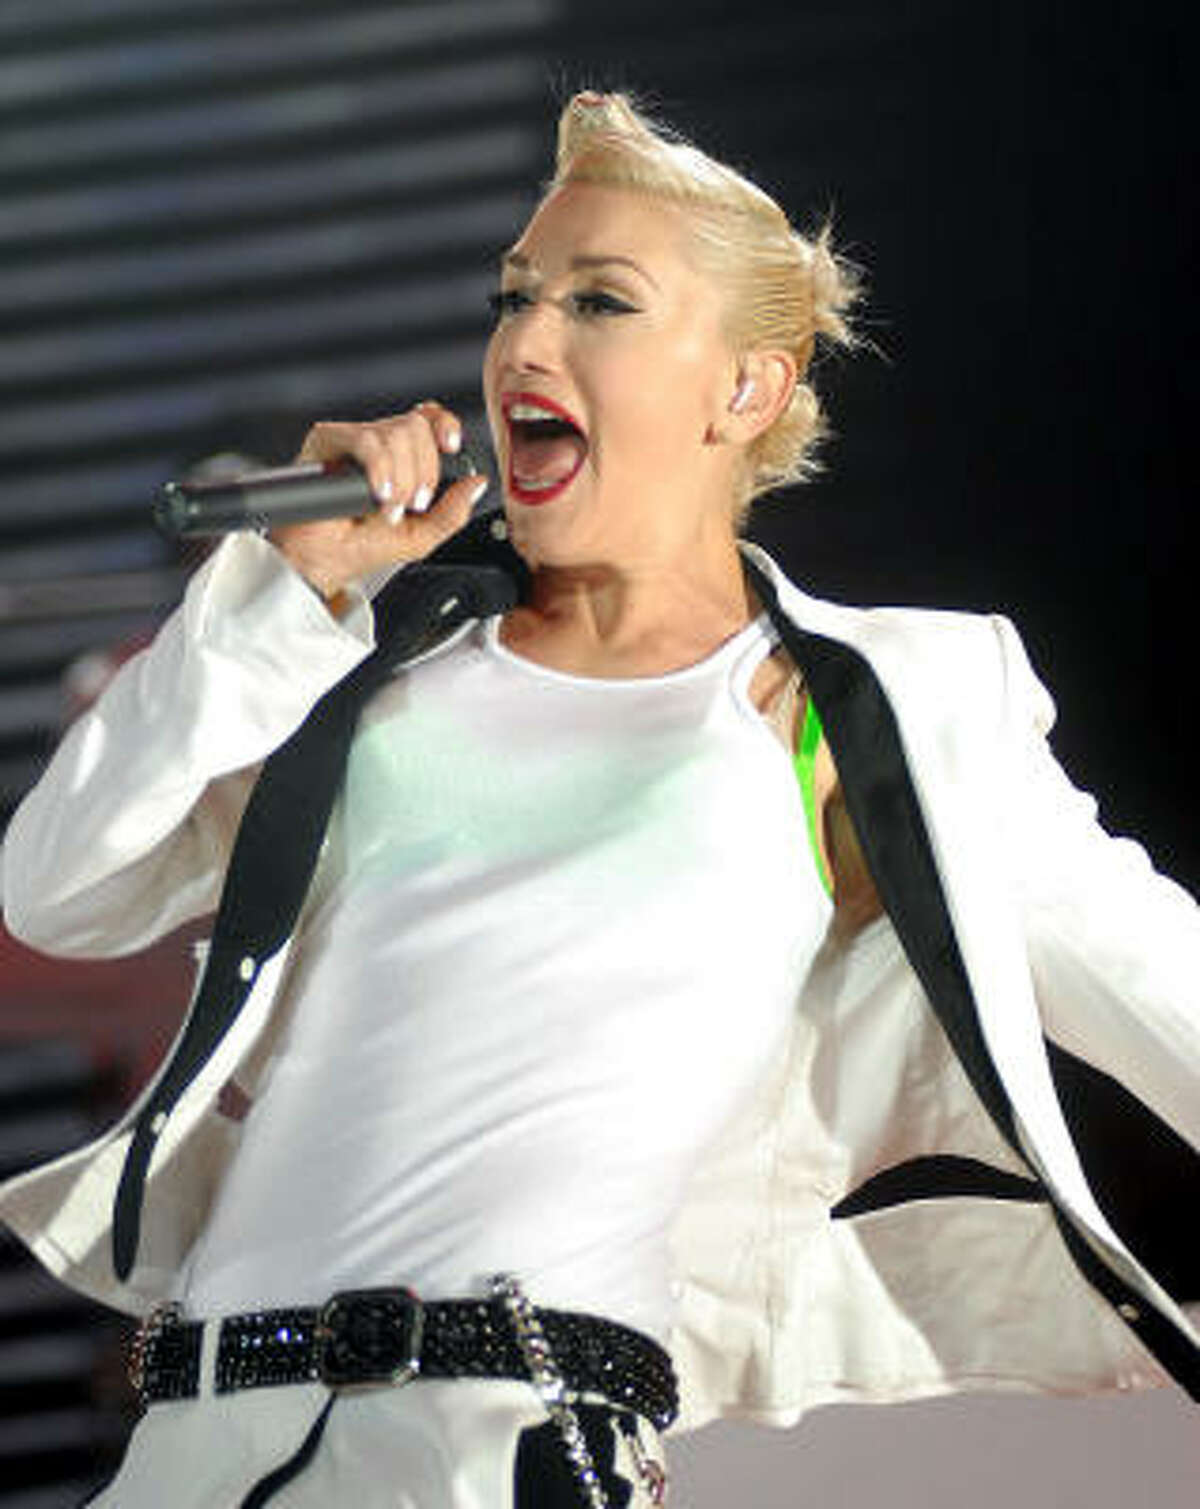 After a five-year hiatus, the pop-rock band and frontwoman Gwen Stefani are back.